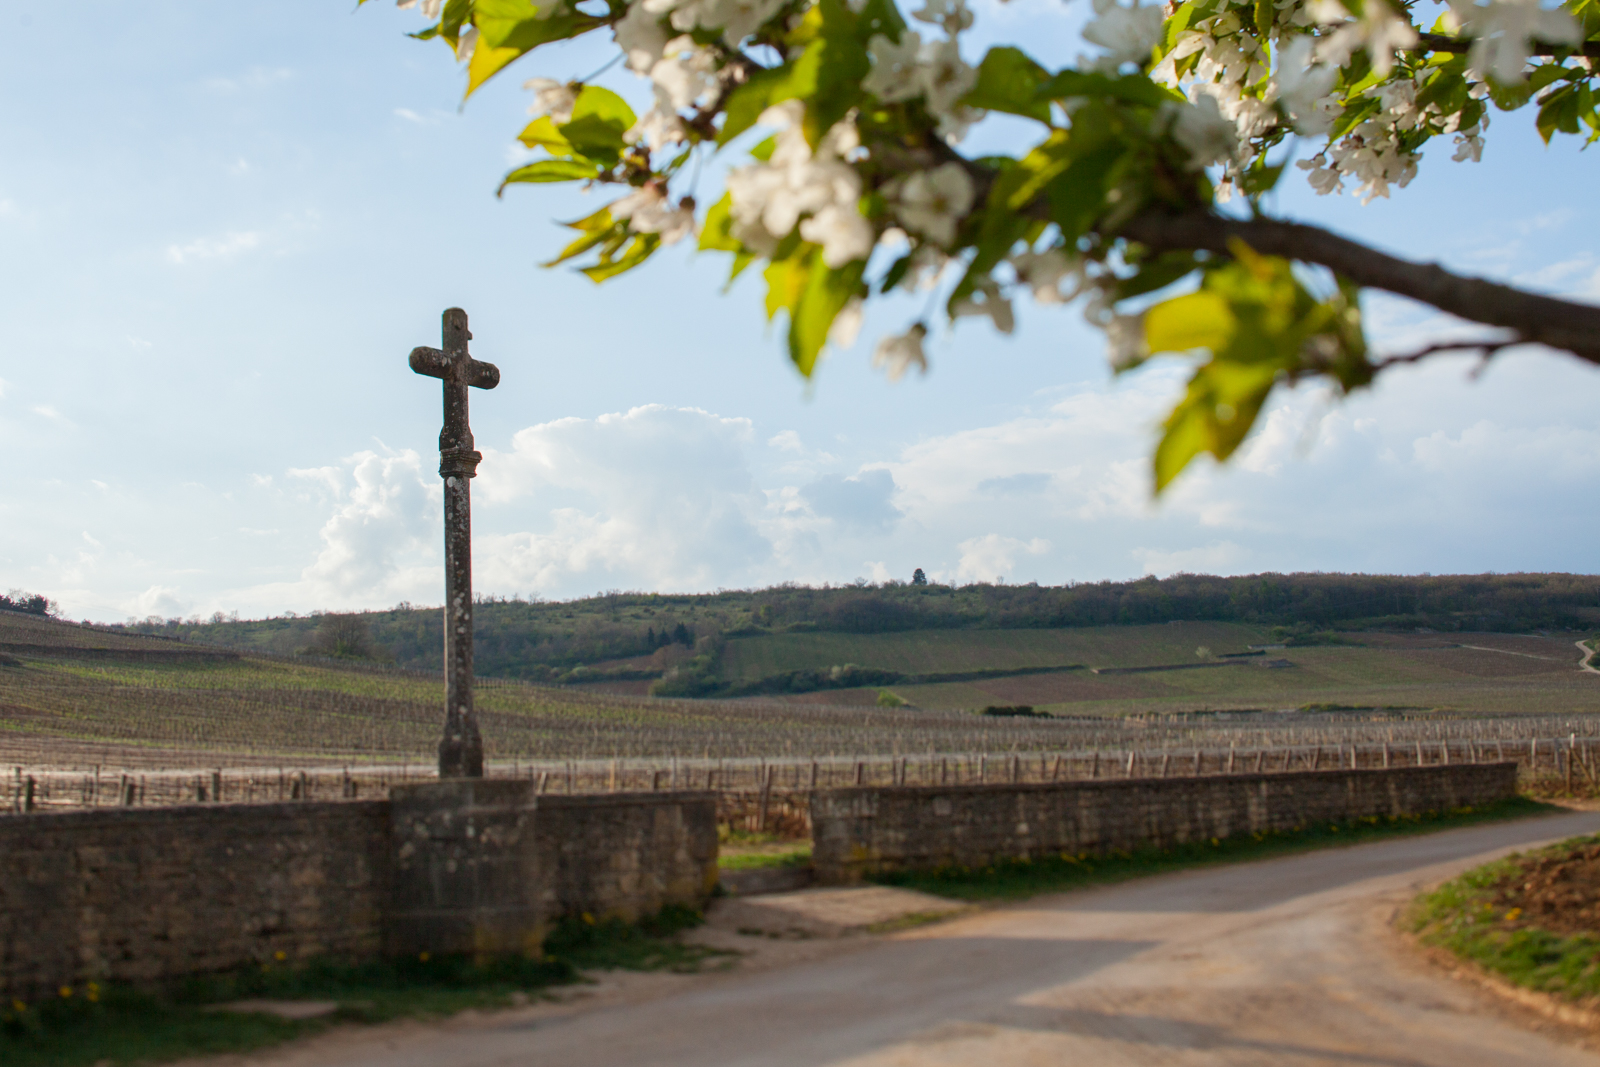 The Grand Cru Romanée-Conti in springtime. ©Kevin Day / Opening a Bottle